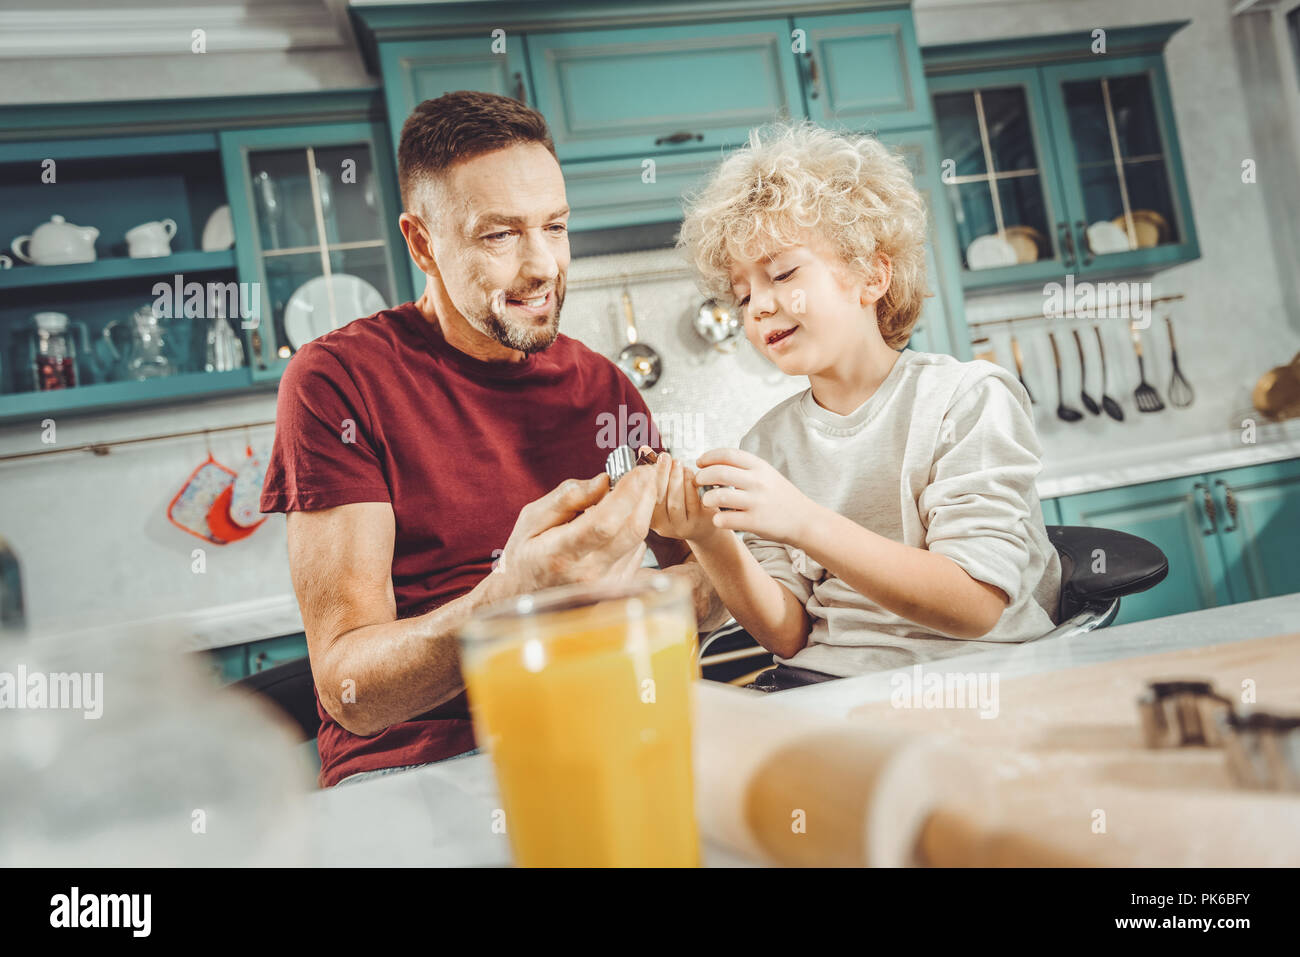 Curly blonde-haired boy giving baking rings his father - Stock Image